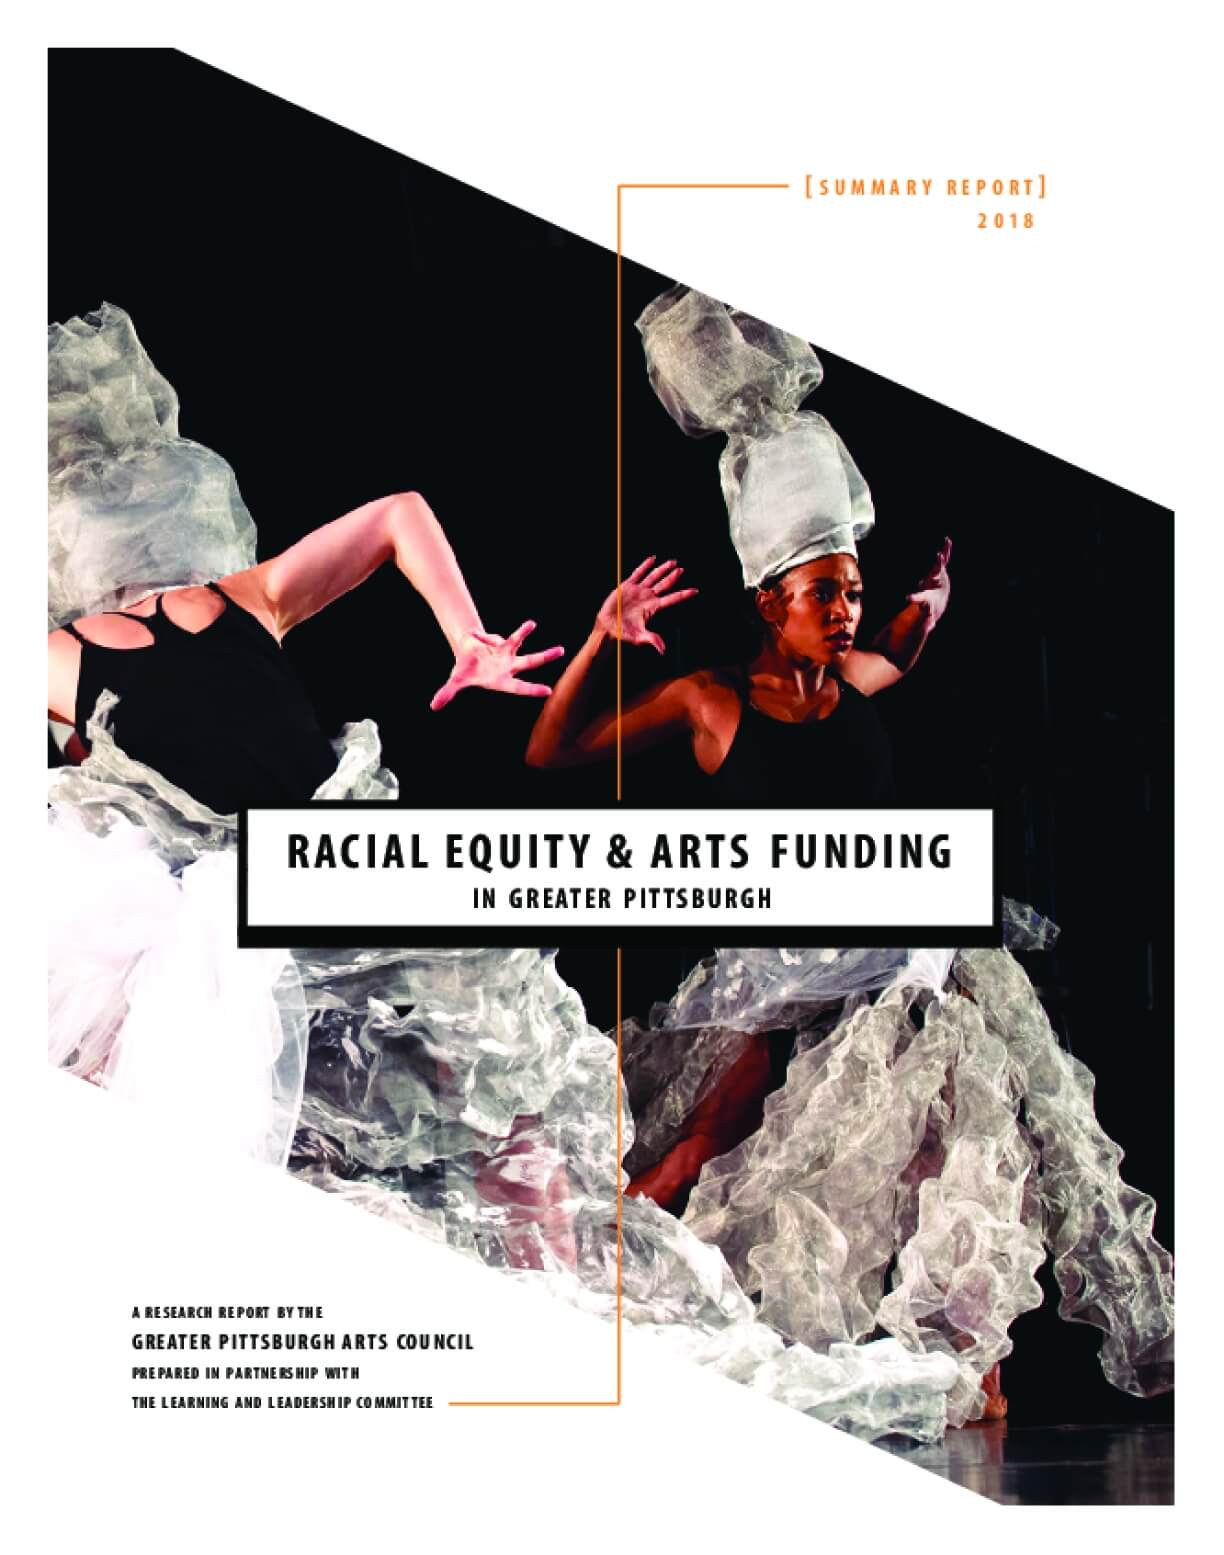 Racial Equity & Arts Funding in Greater Pittsburgh